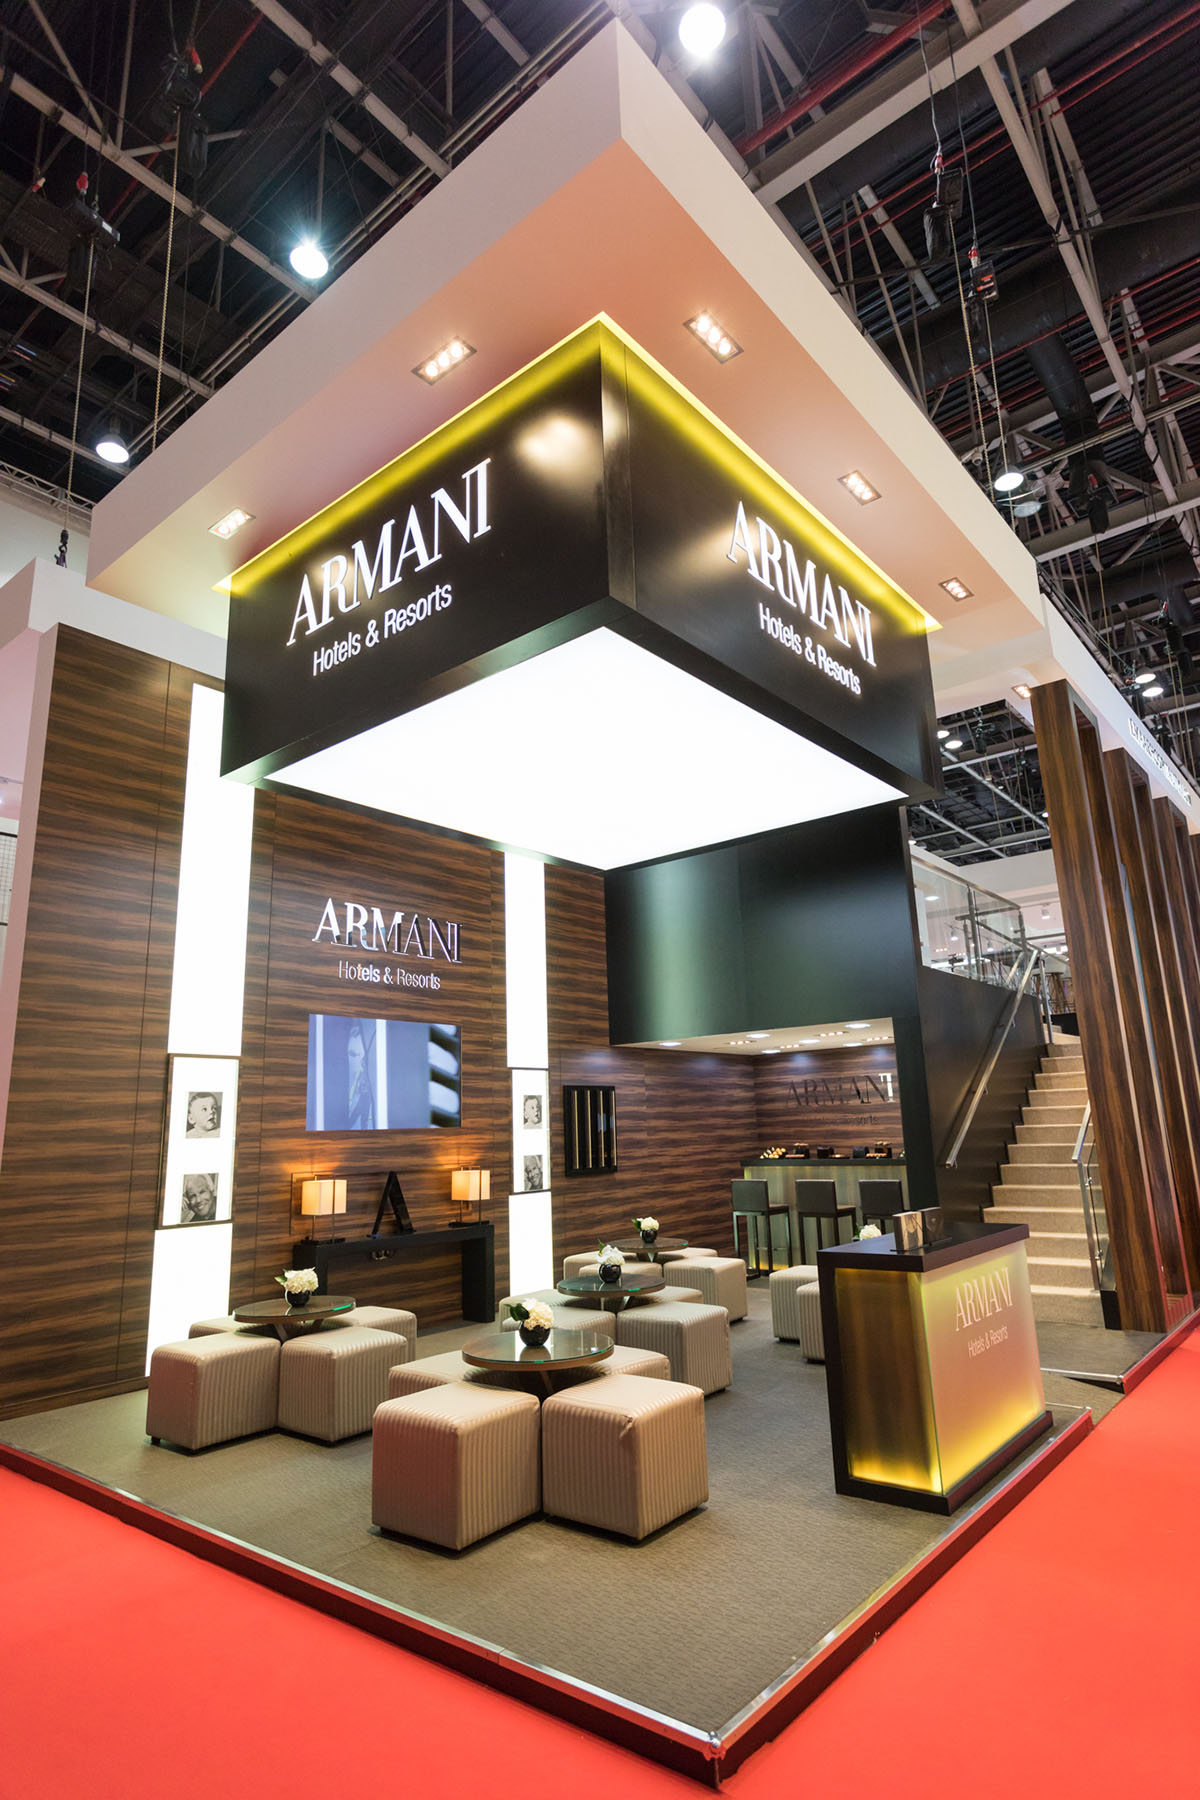 Armani event stand by Loesje Kessels Fashion Photographer Dubai